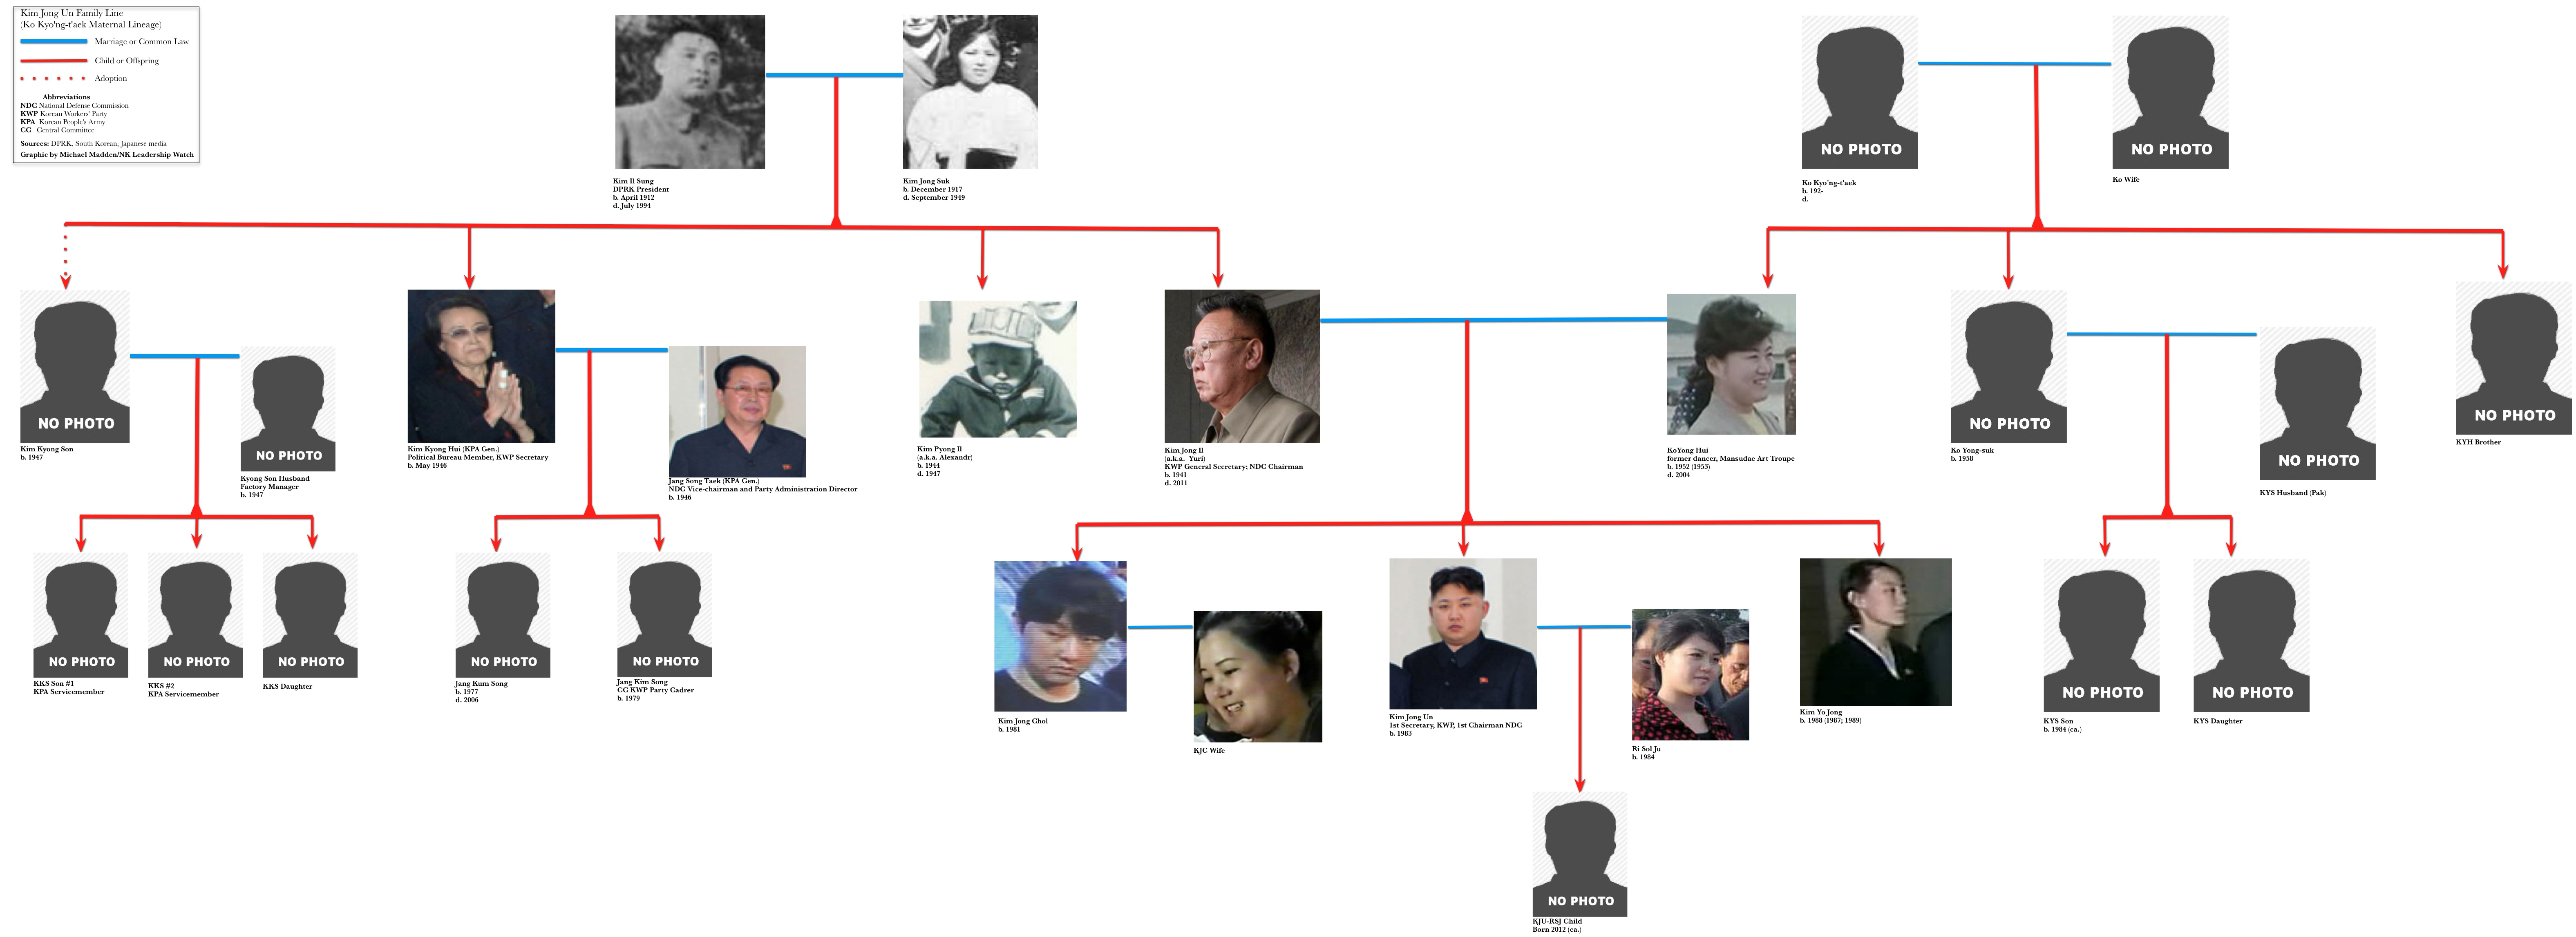 Kim Jong Un Family Relations (based on the Ko Kyo'ng-t'aek matrilineal relationship) (Graphic by M. Madden/NKLW)